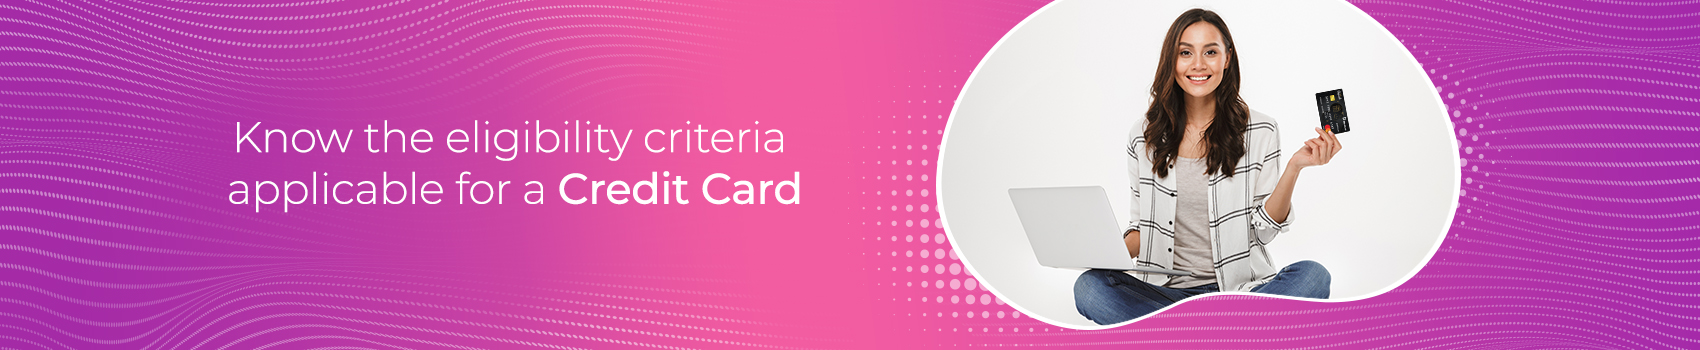 Know the eligibility criteria applicable for a Credit Card